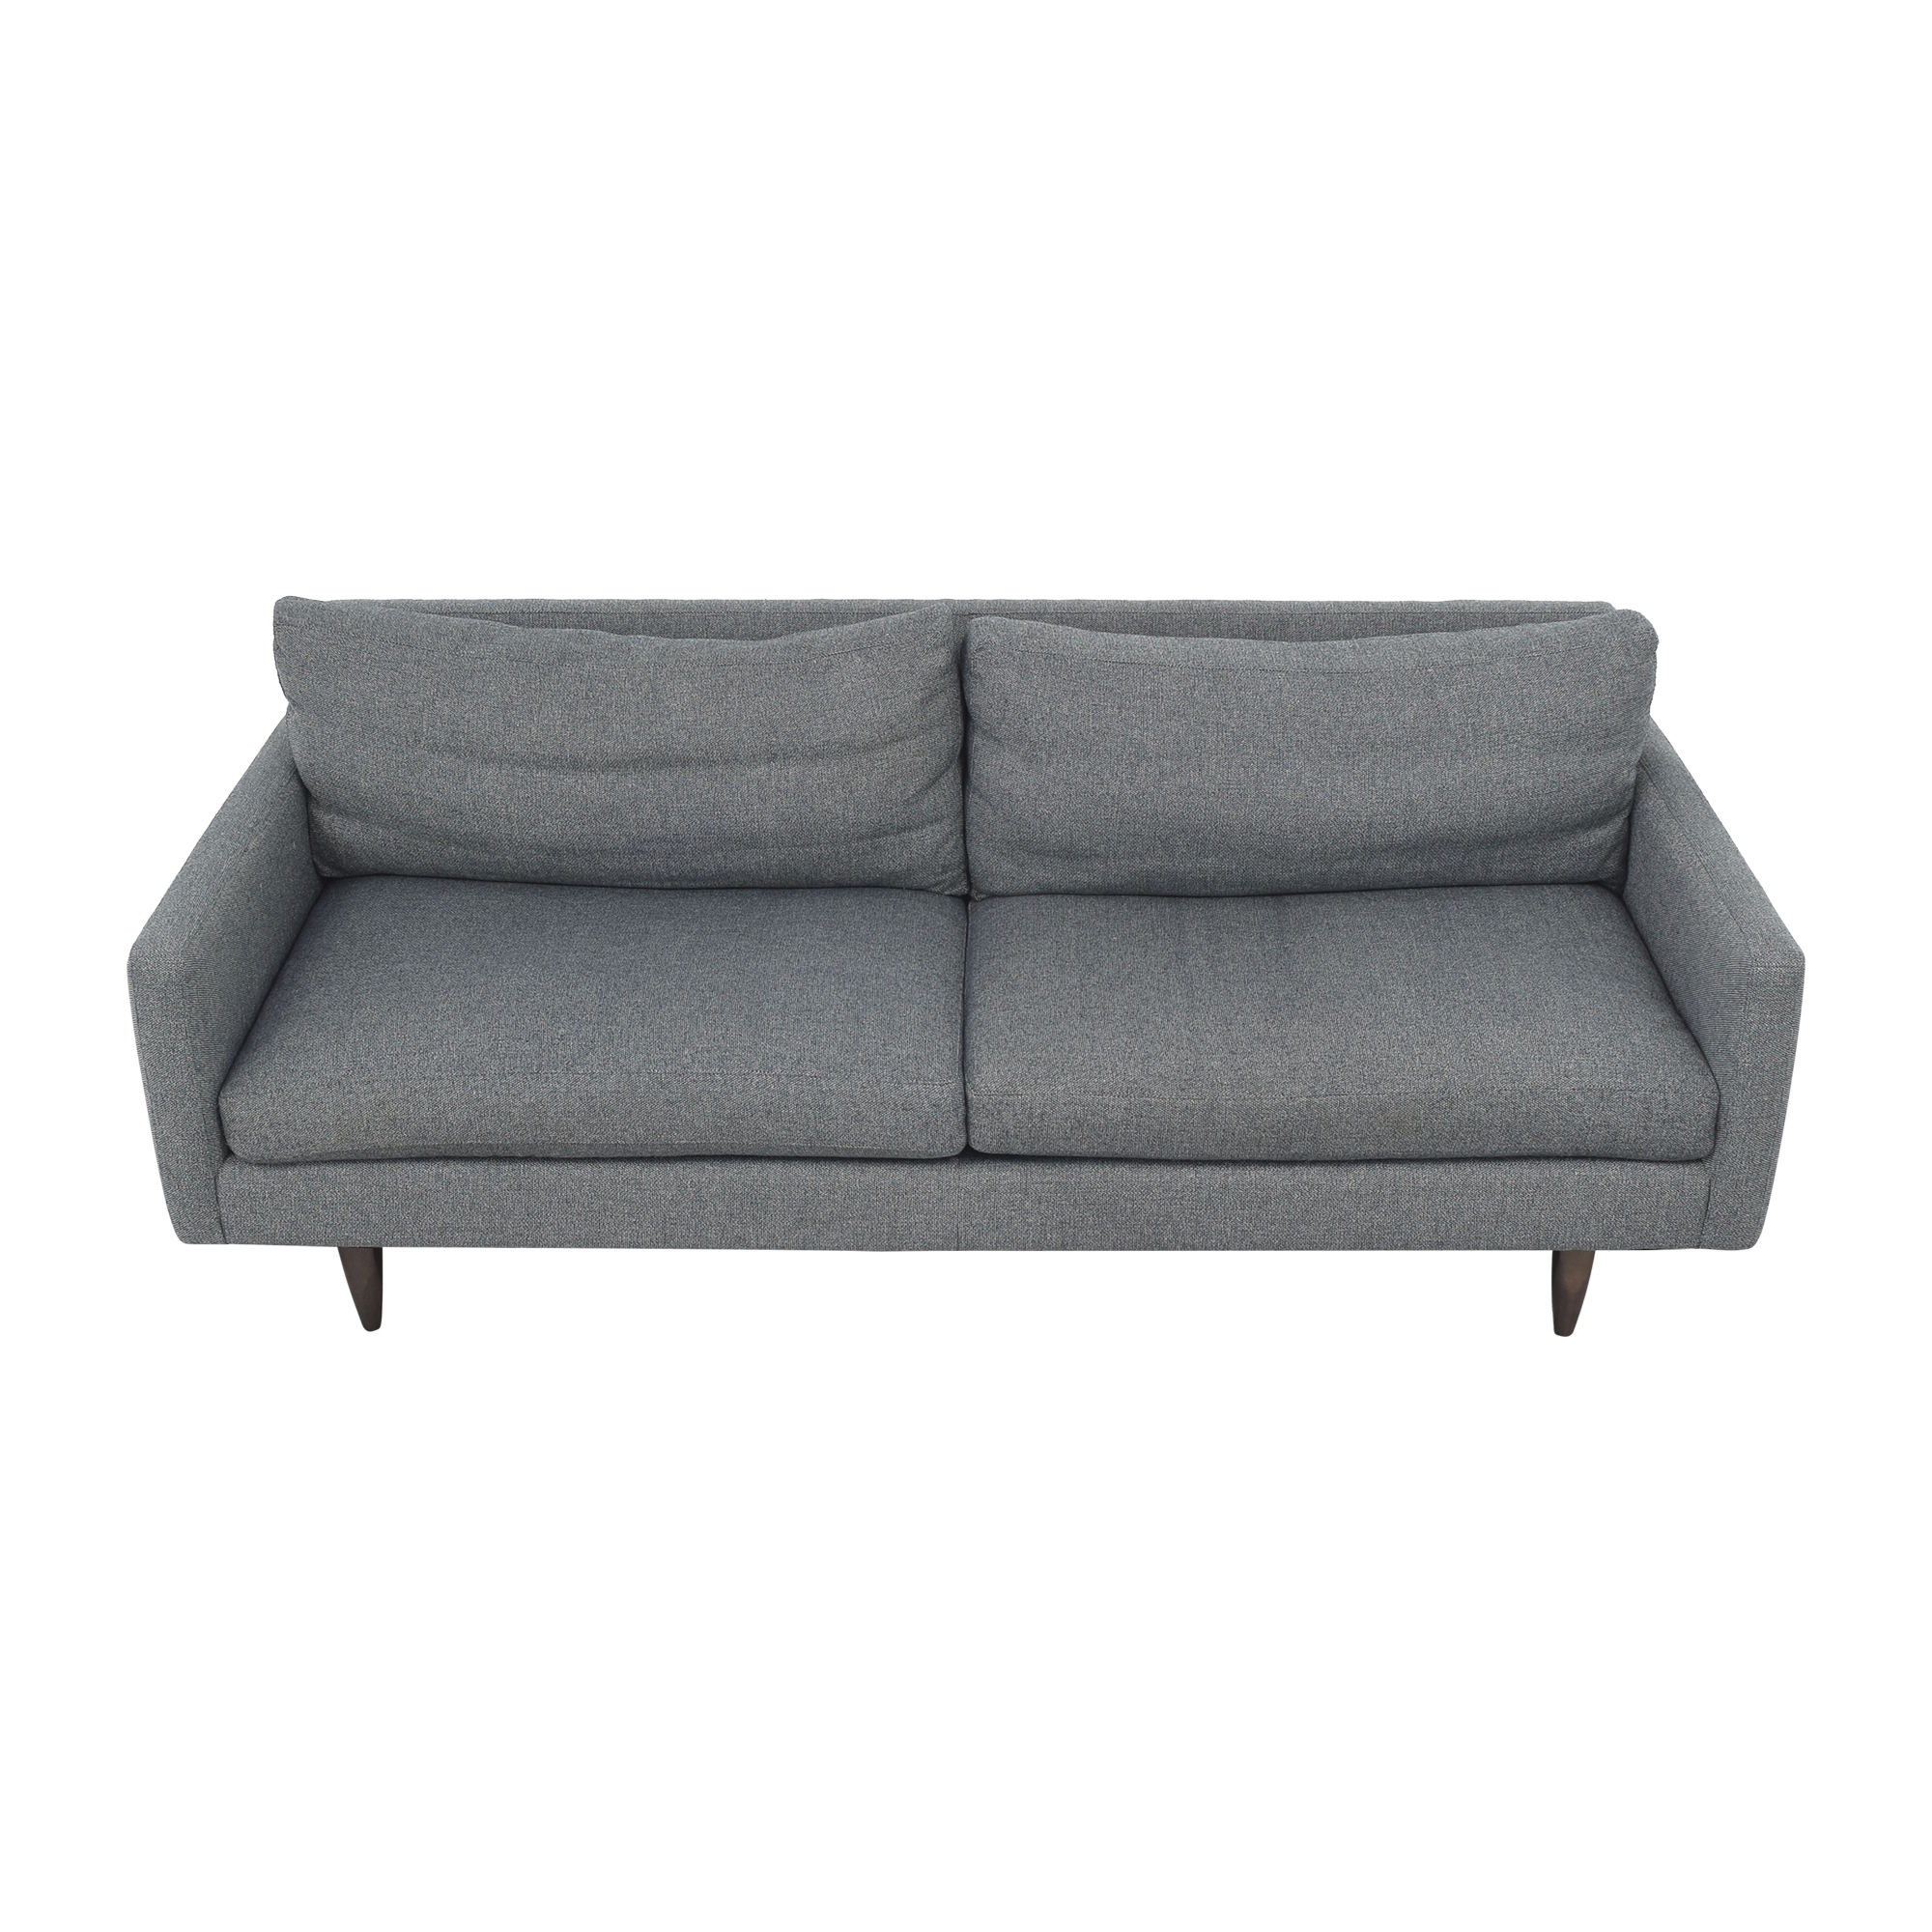 Room & Board Jasper Two Cushion Sofa sale